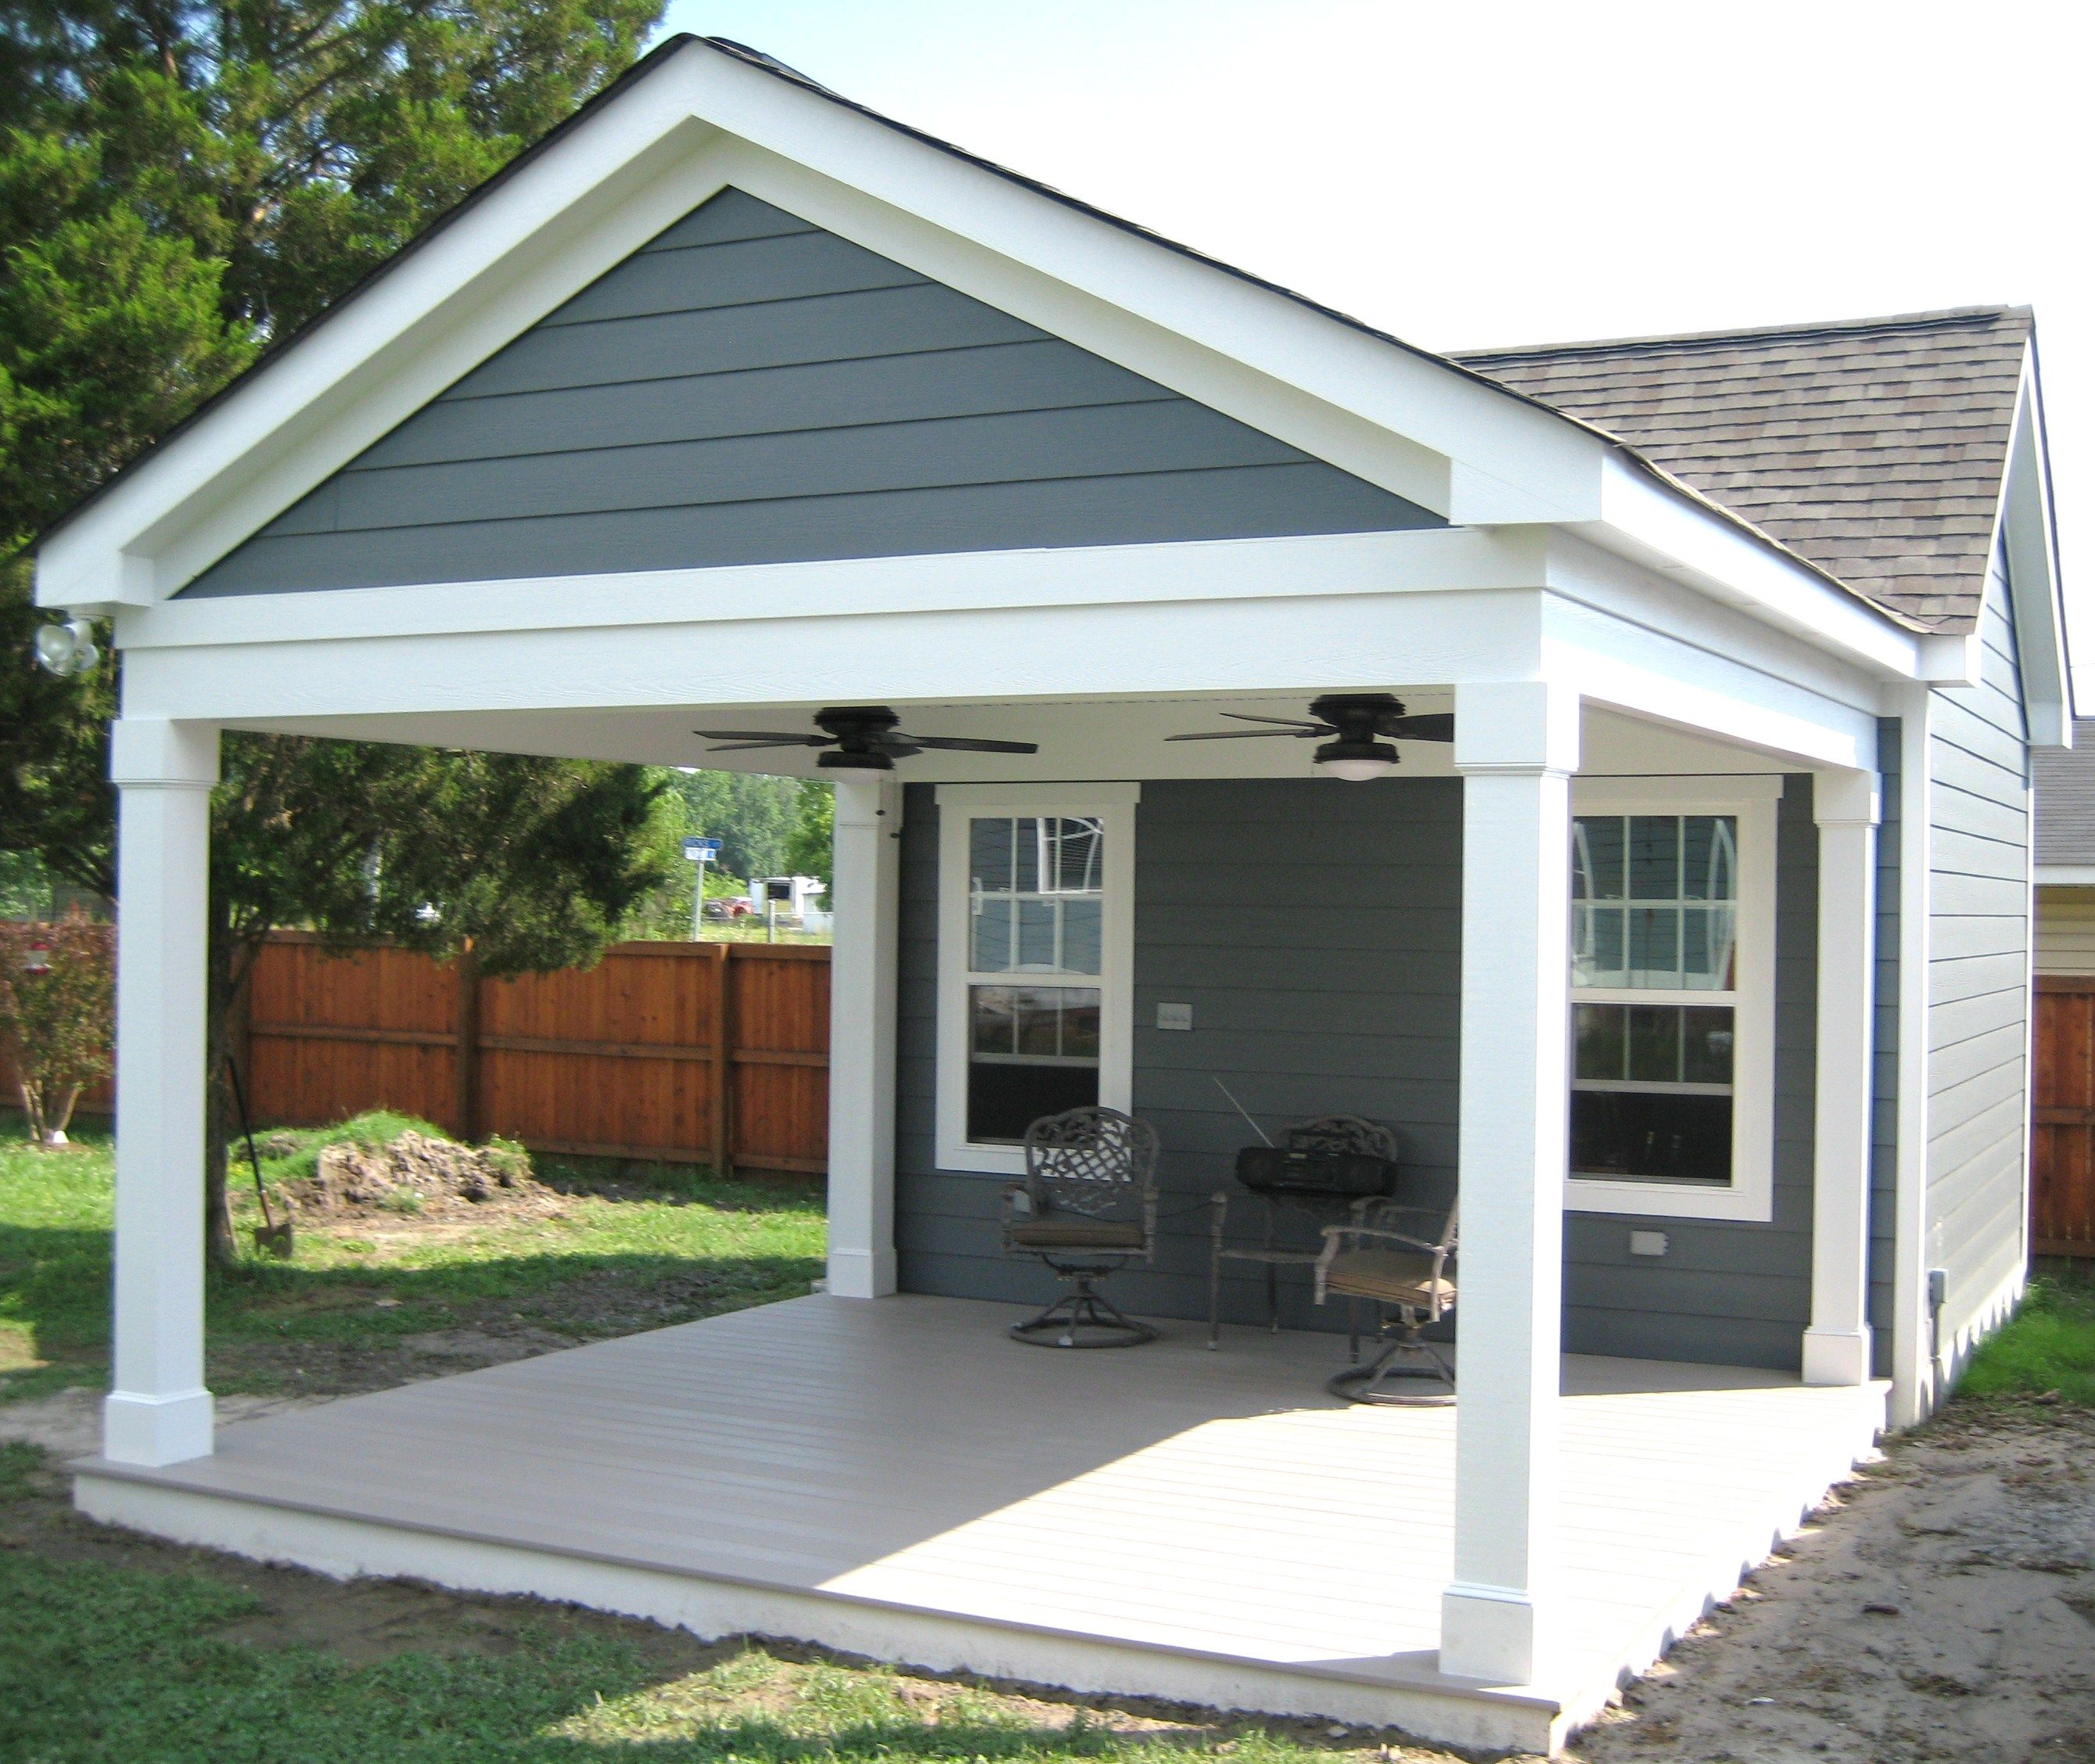 Garage Plans · Garage With Porch | Outbuilding With Covered Porch